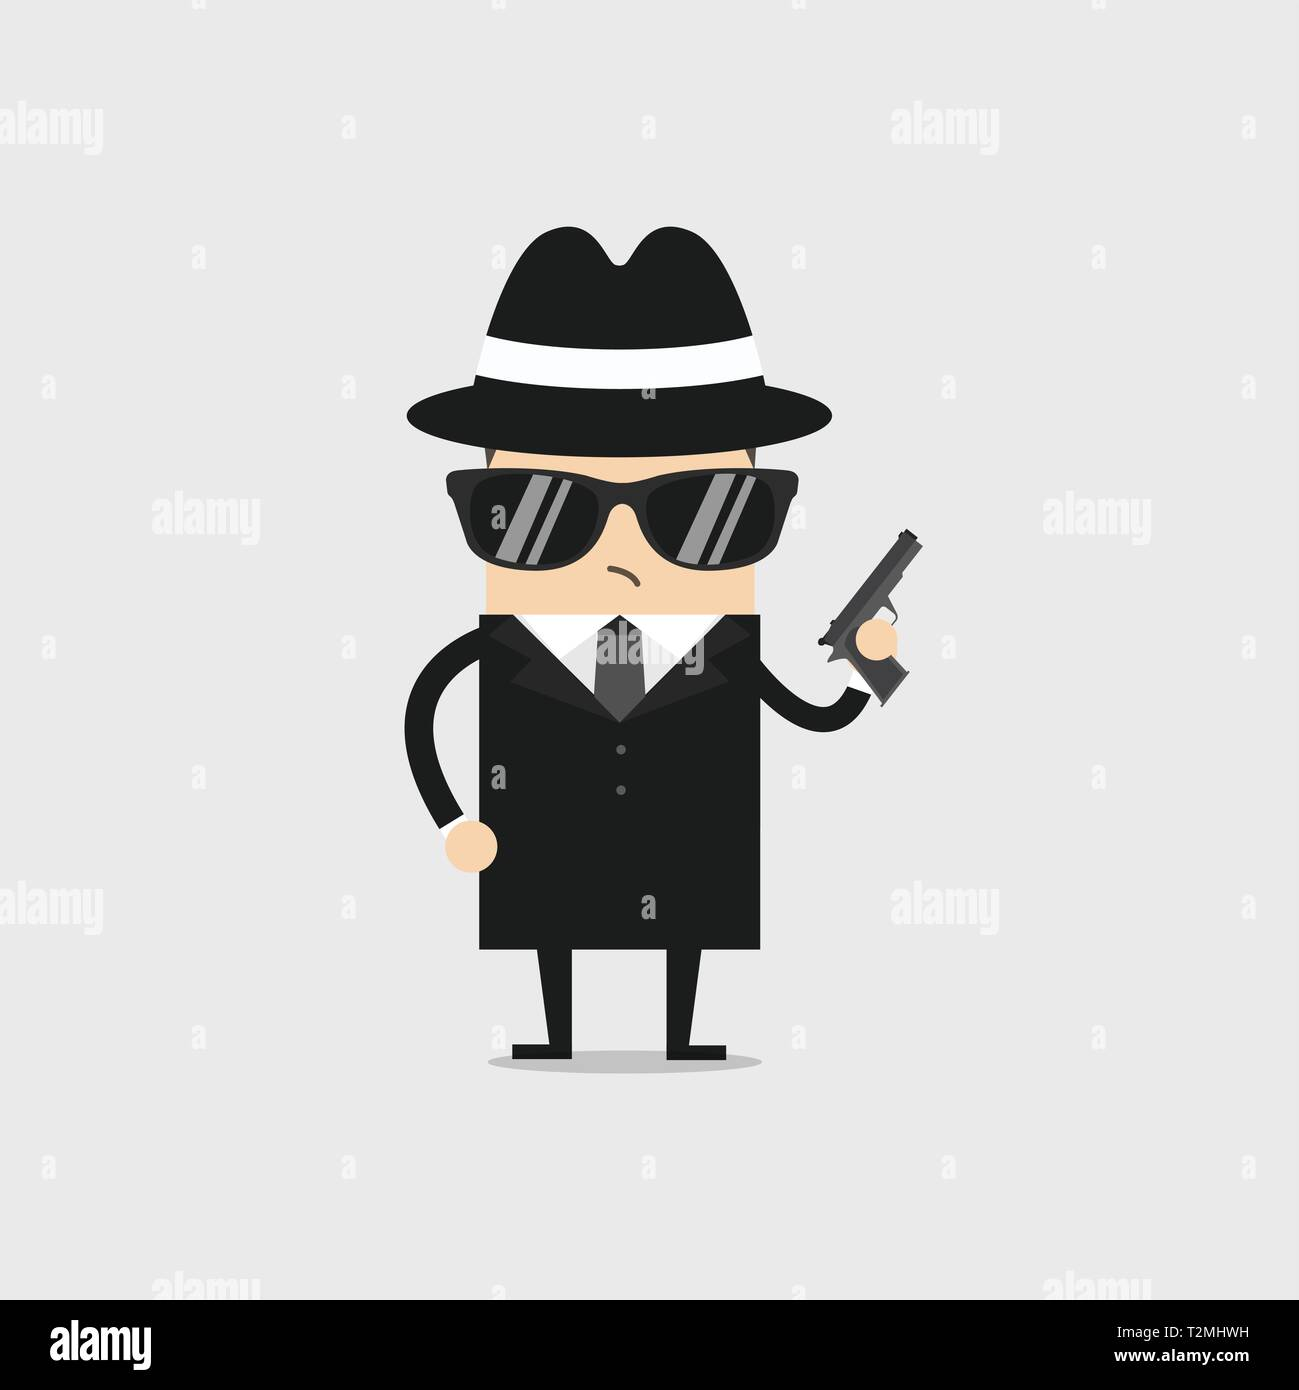 The detective wears black glasses and holds a gun in his hand. - Stock Image